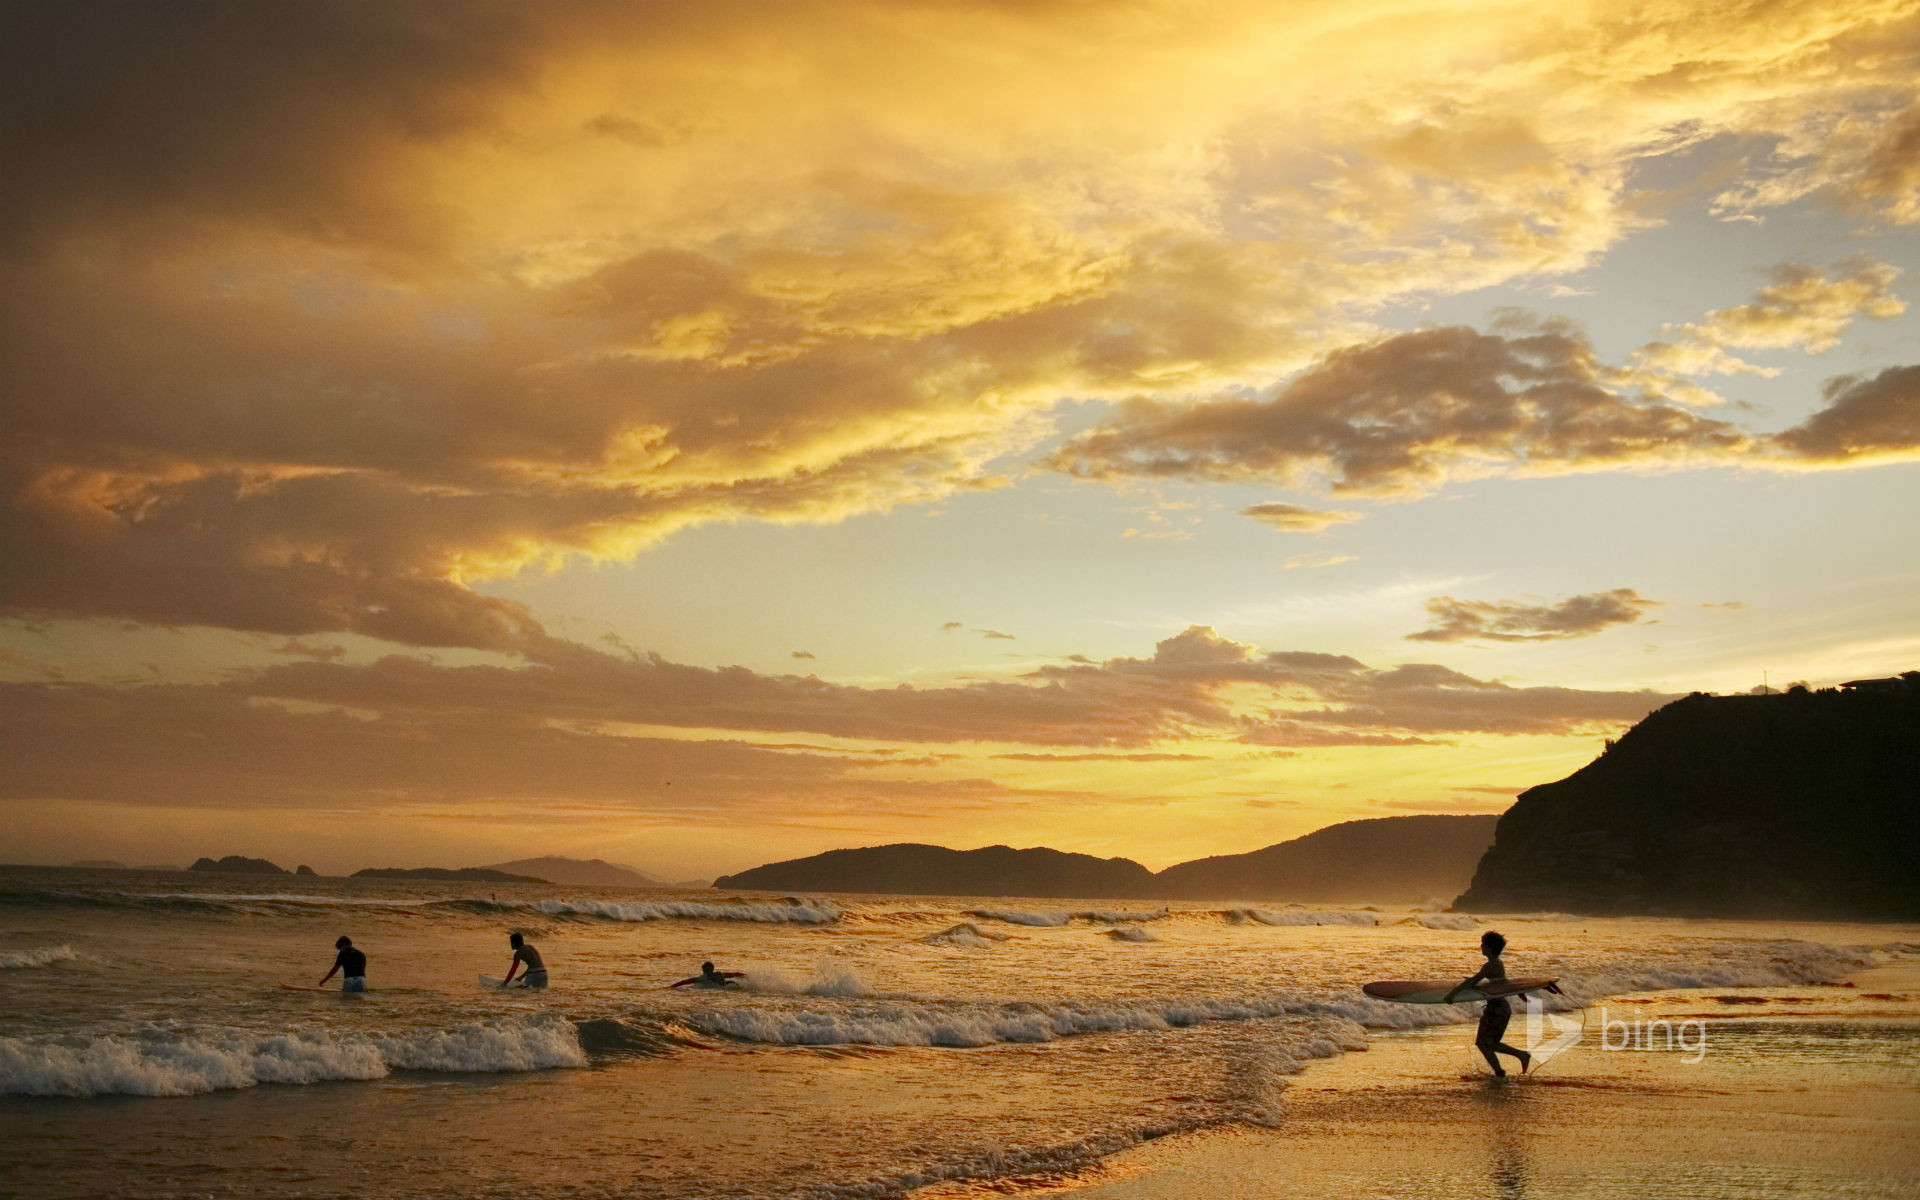 People surfing at dusk, Geriba Beach, Buzios, Brazil